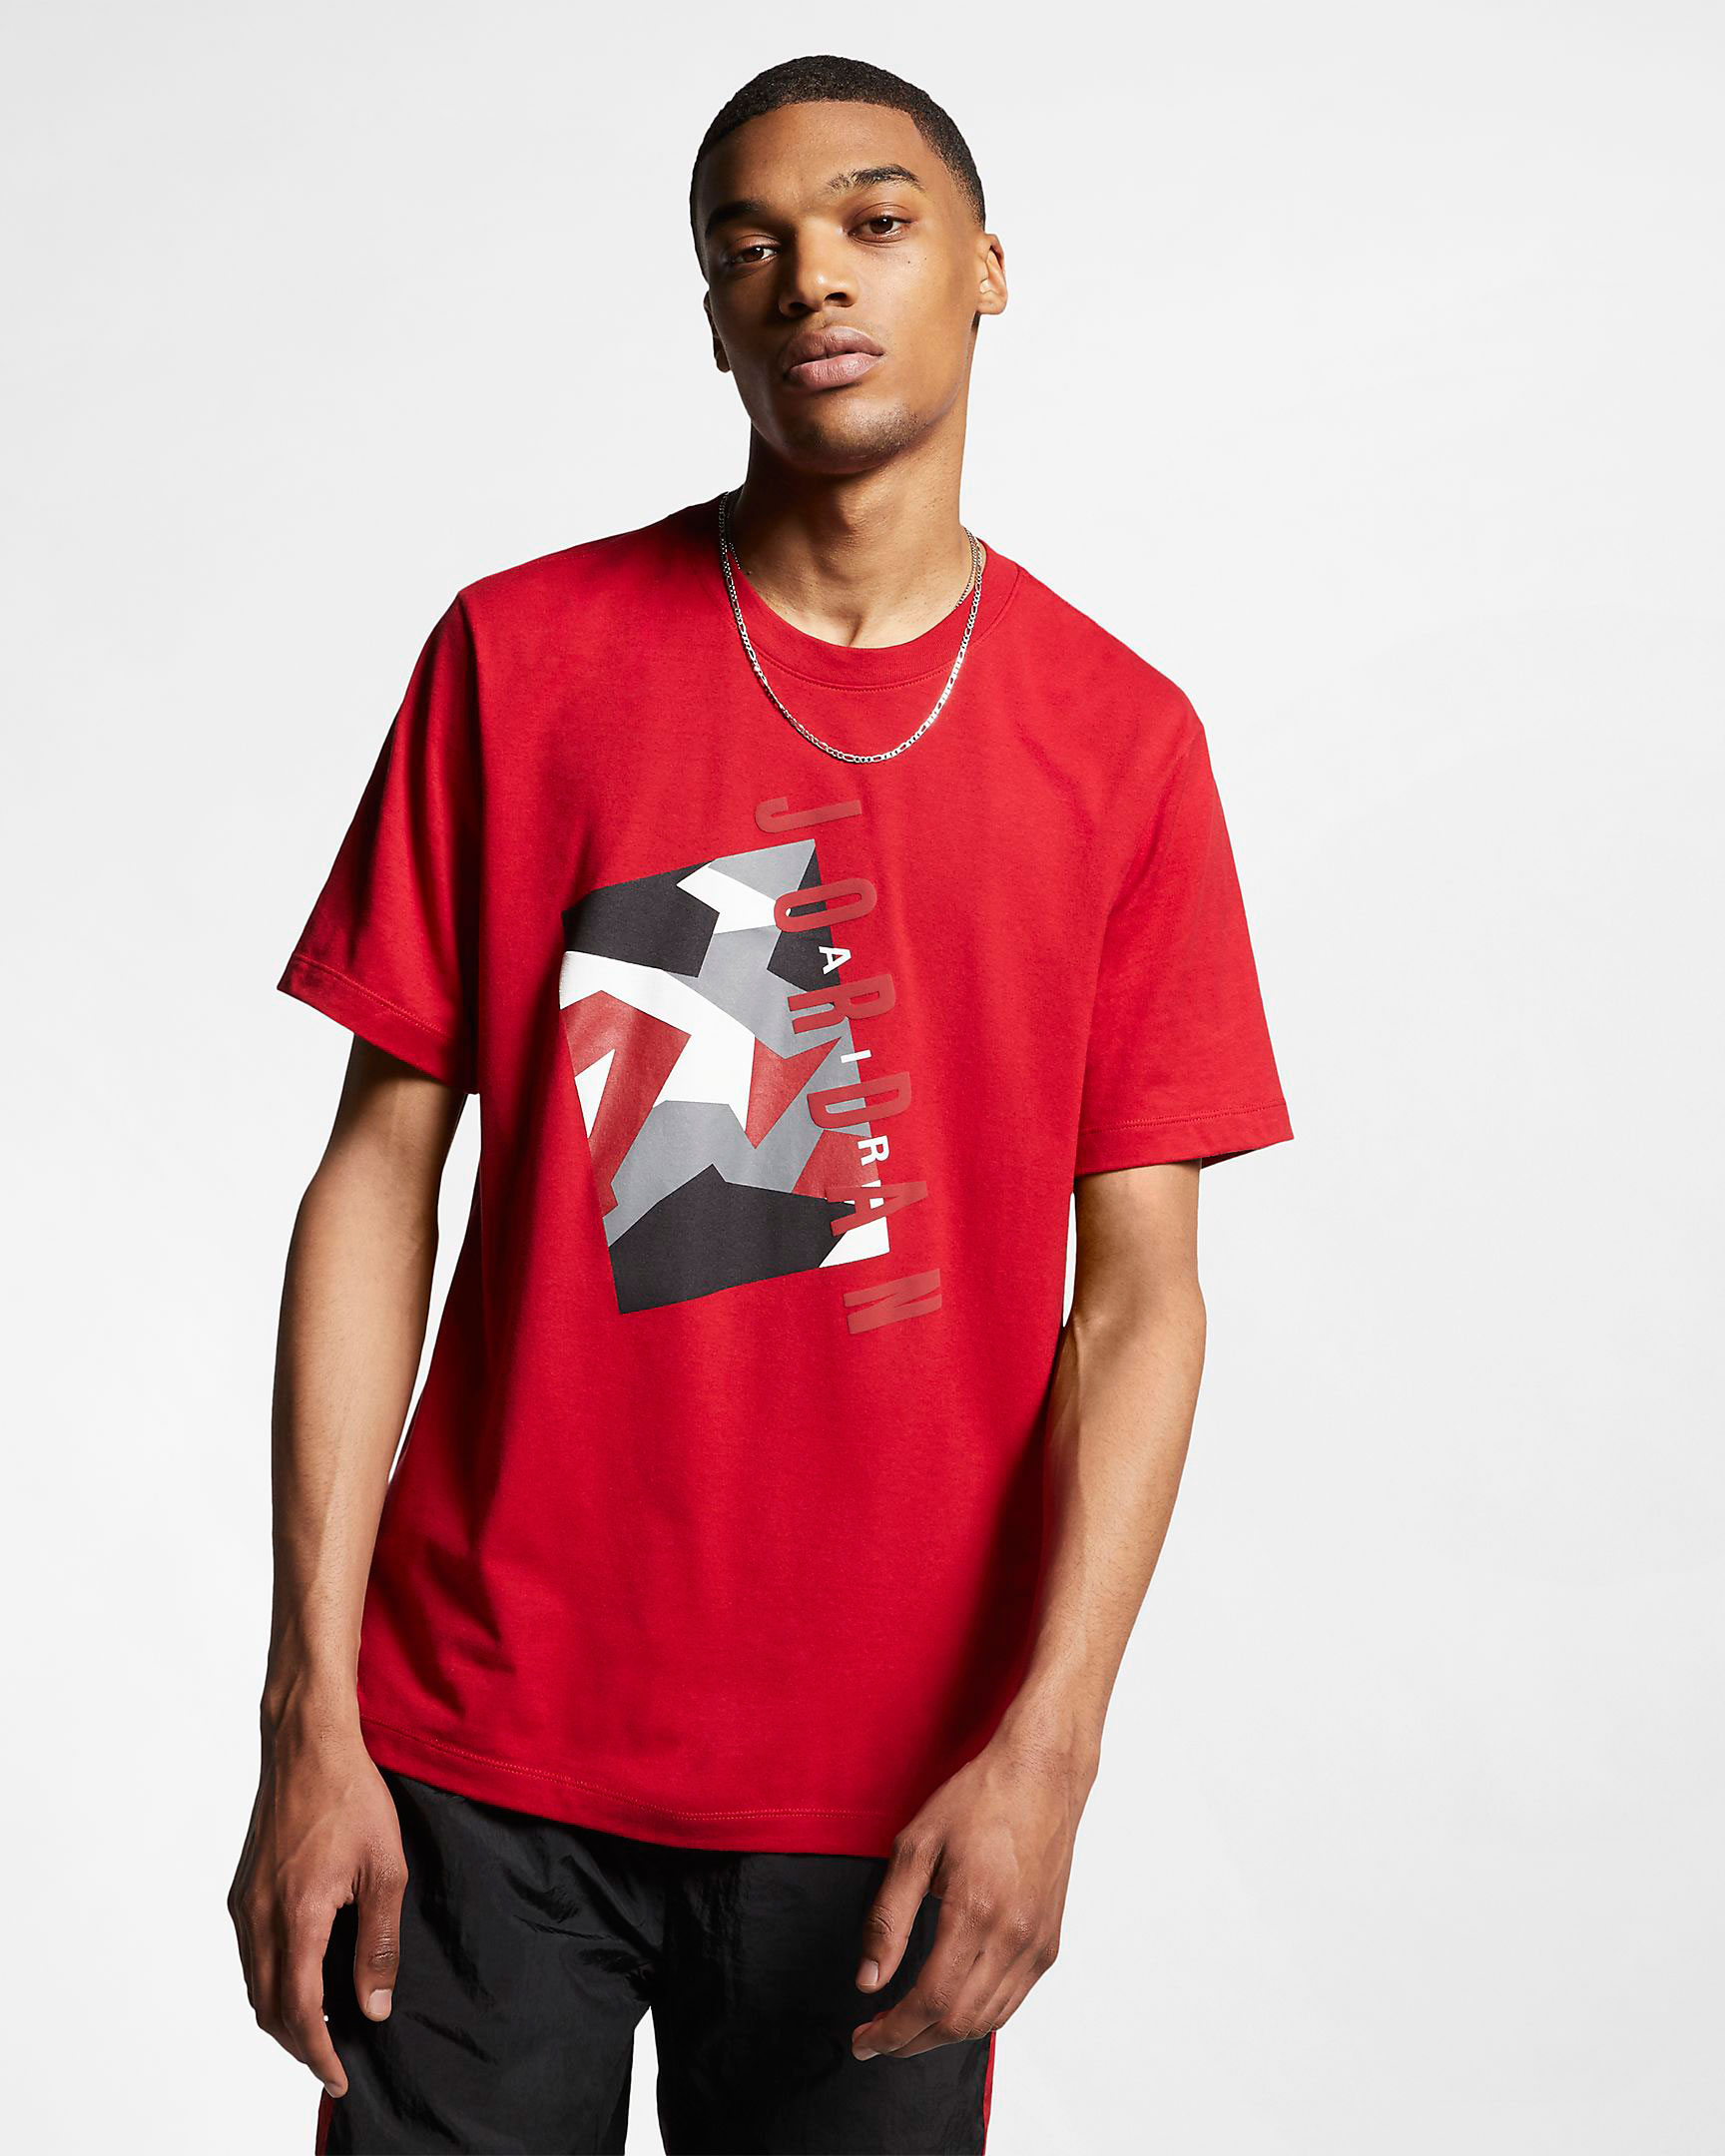 air-jordan-4-bred-2019-shirt-match-1